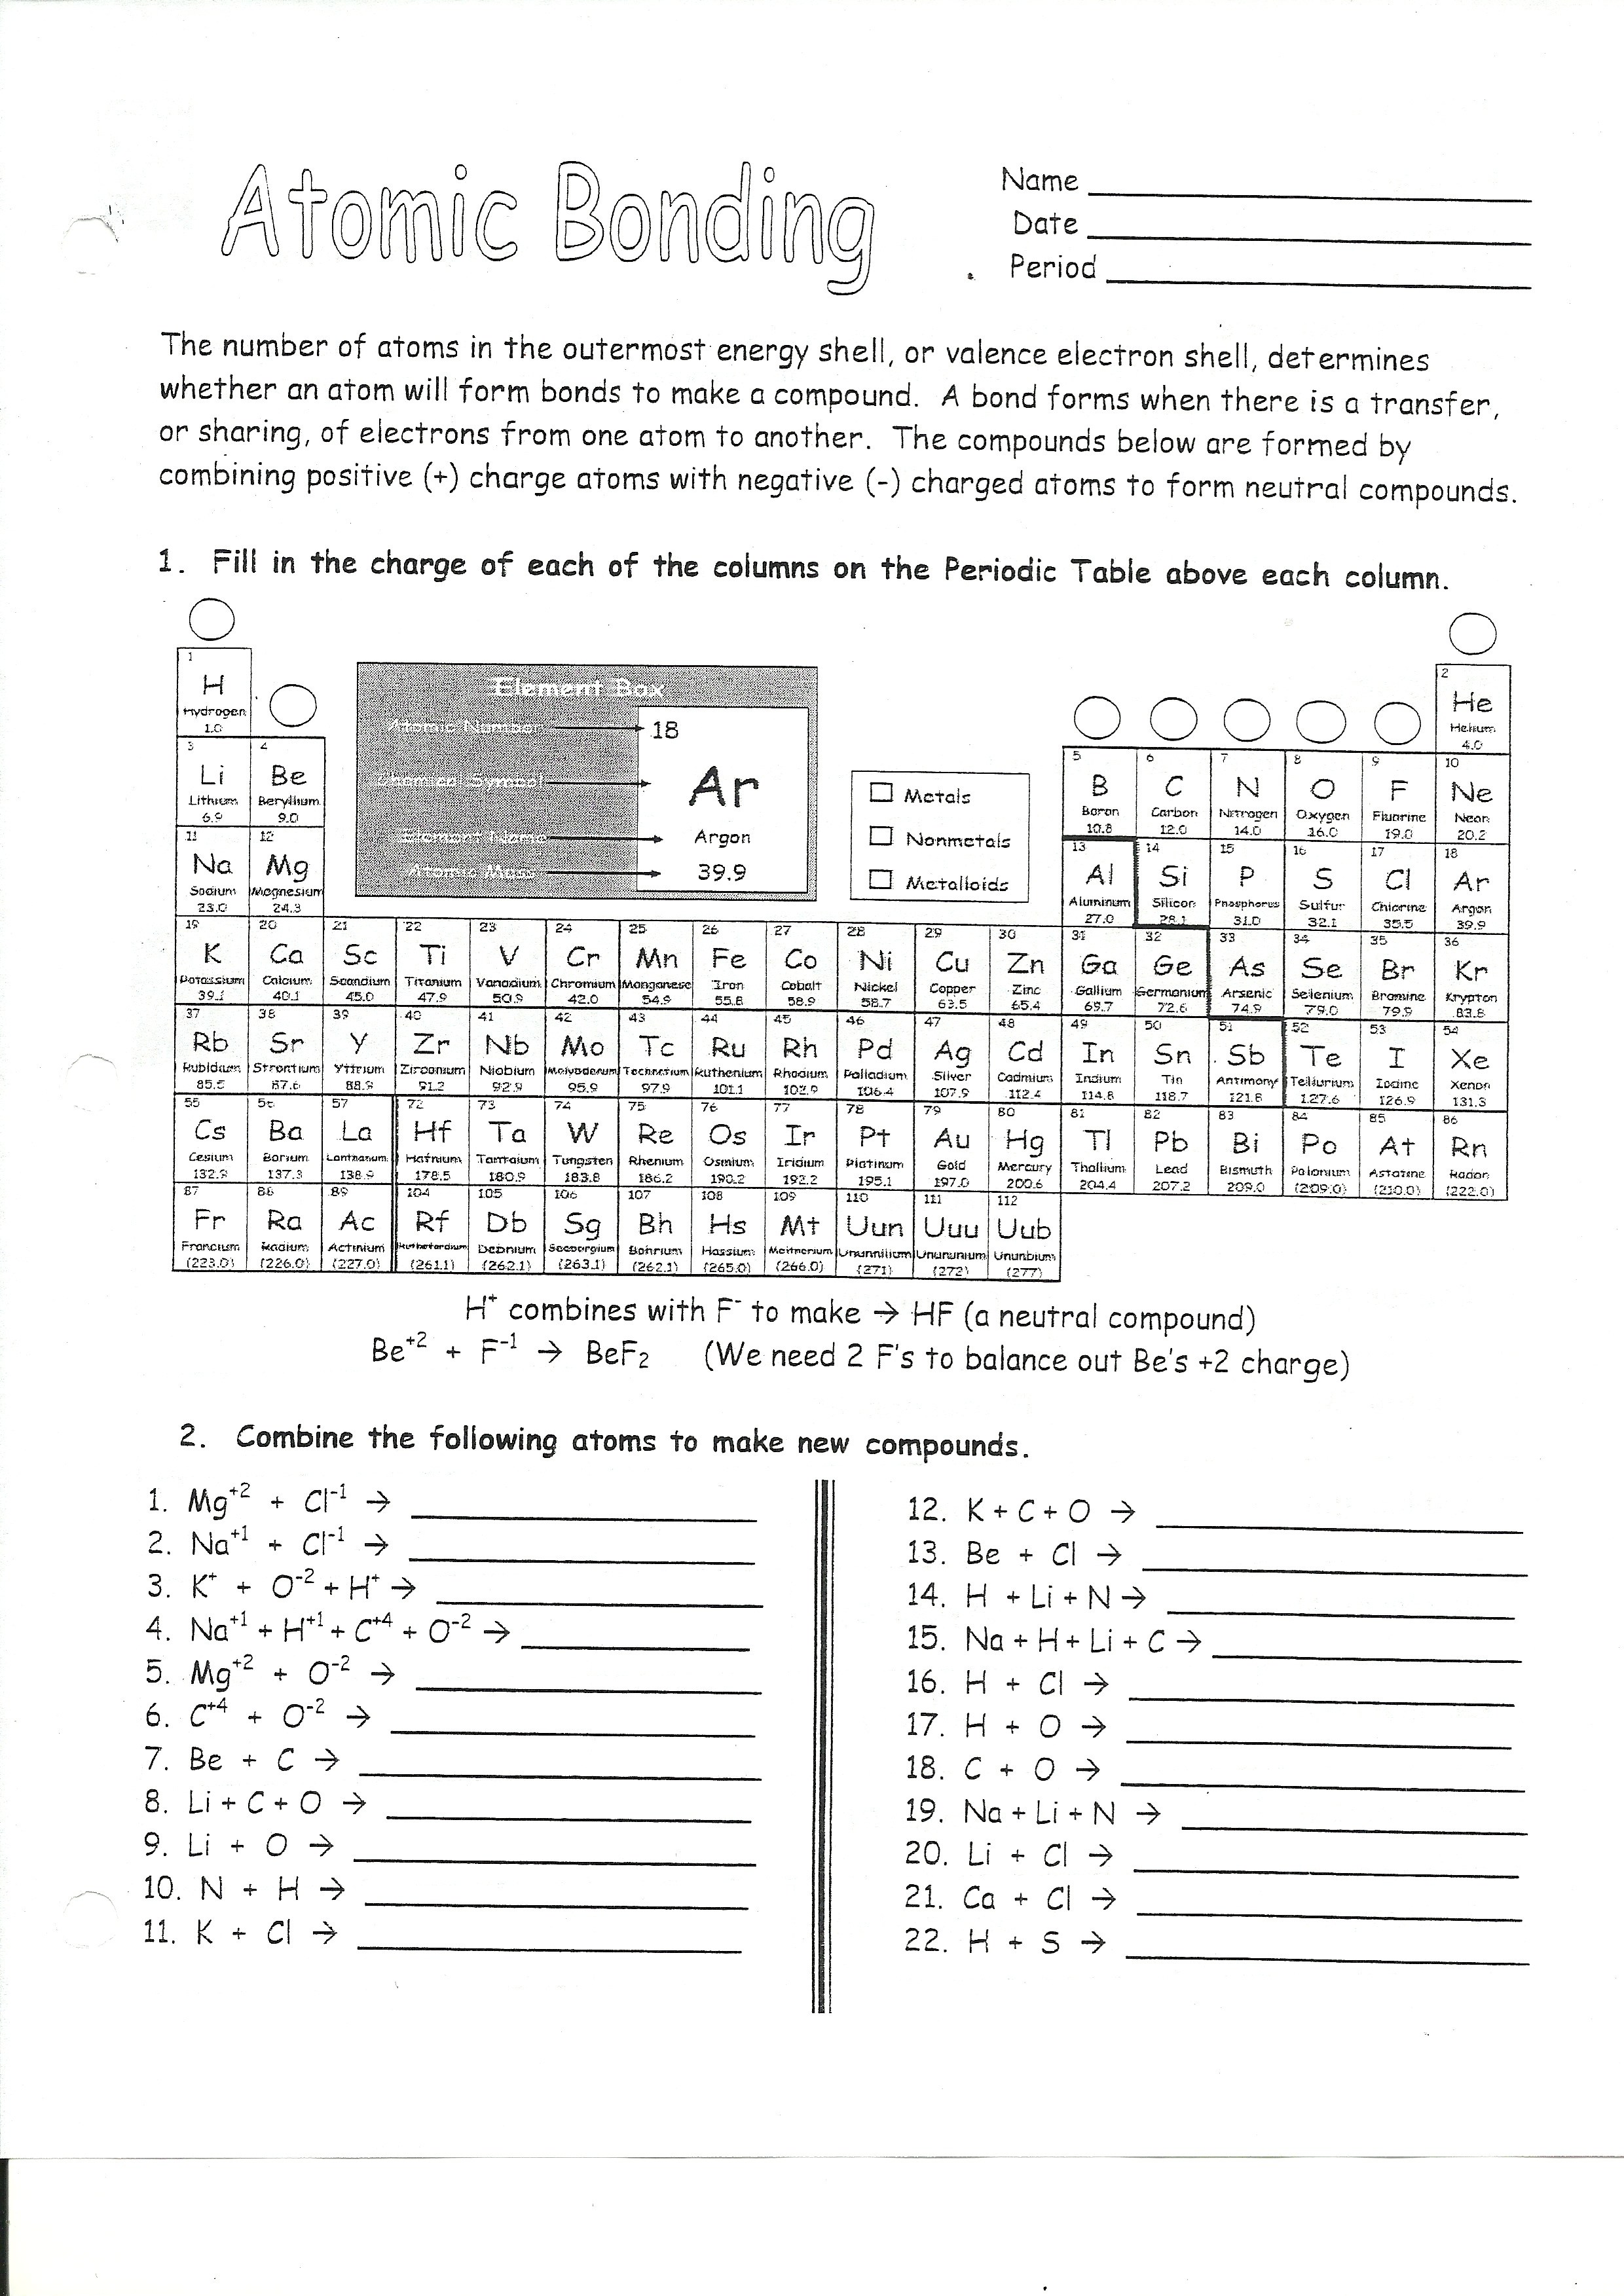 Chemistry Counting Atoms In Compounds Worksheet 70 1 Answers - The ...